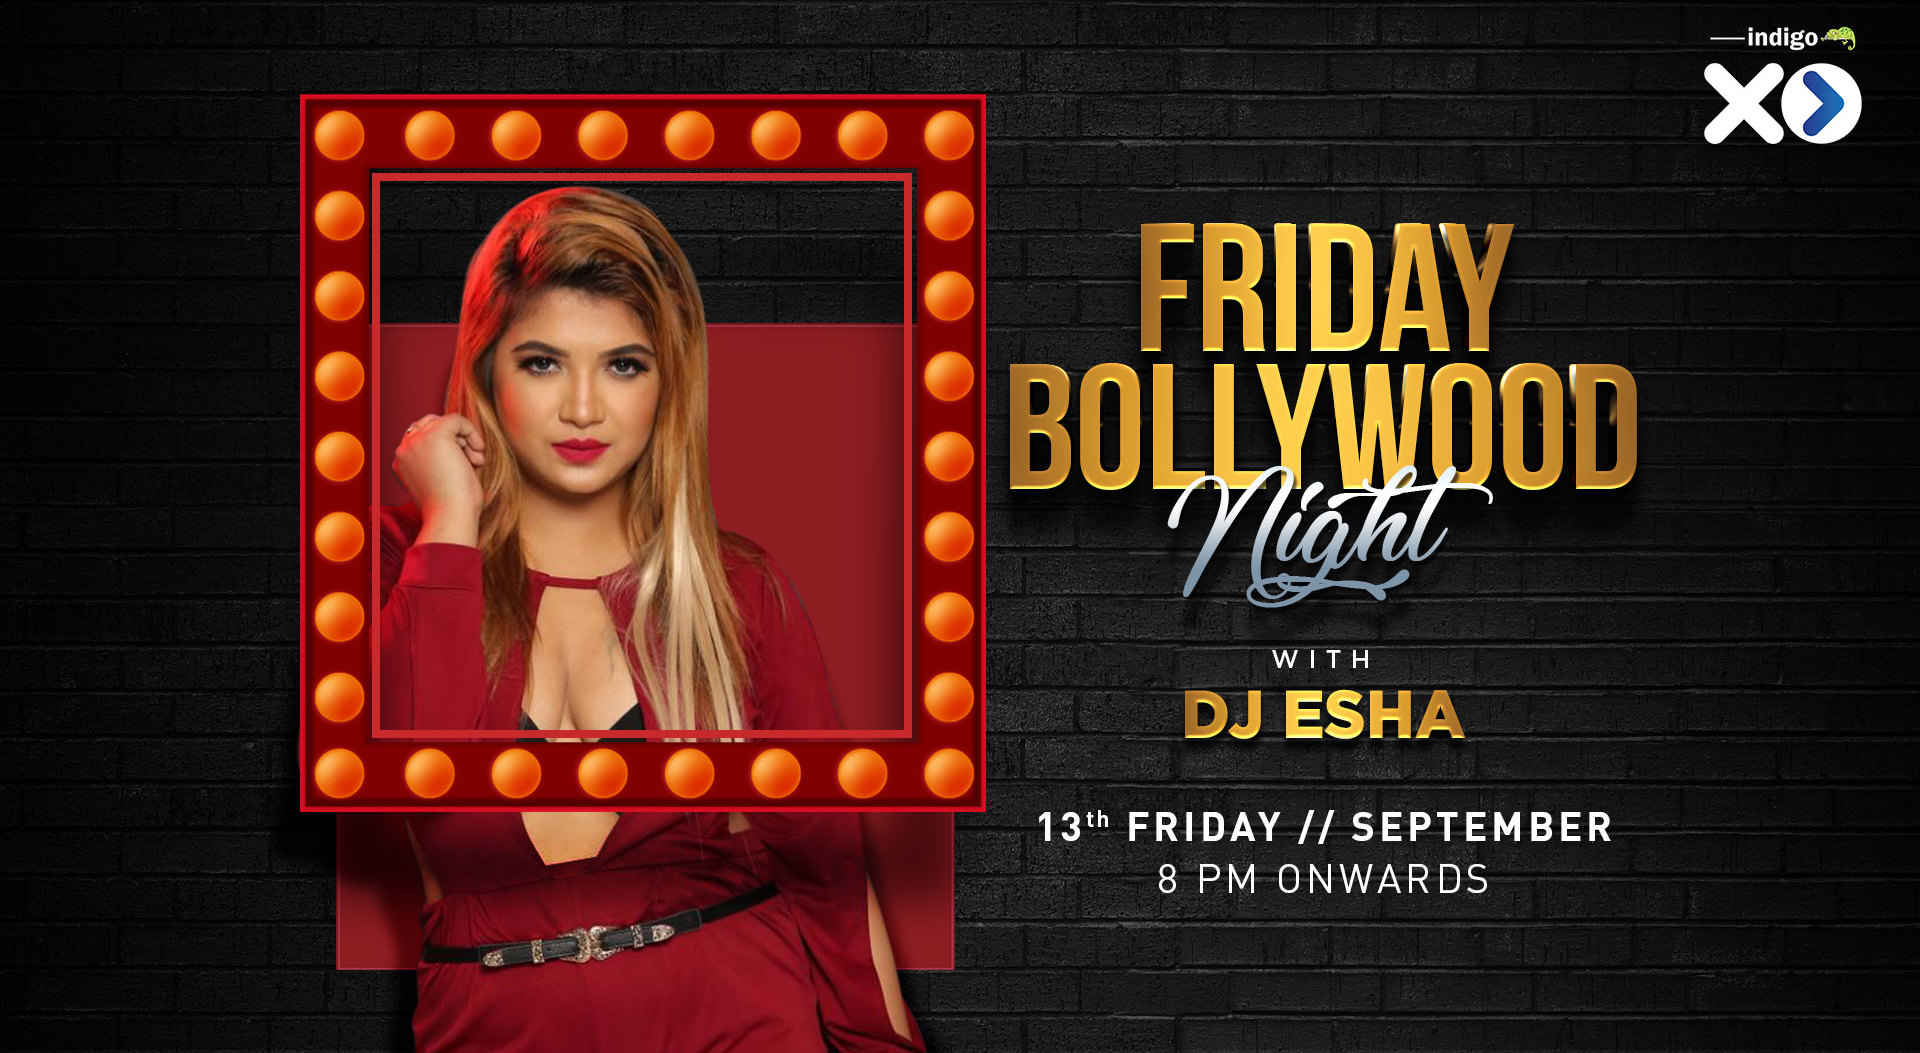 Book Bollywood Night Friday (Sep 2019) Event Tickets Online